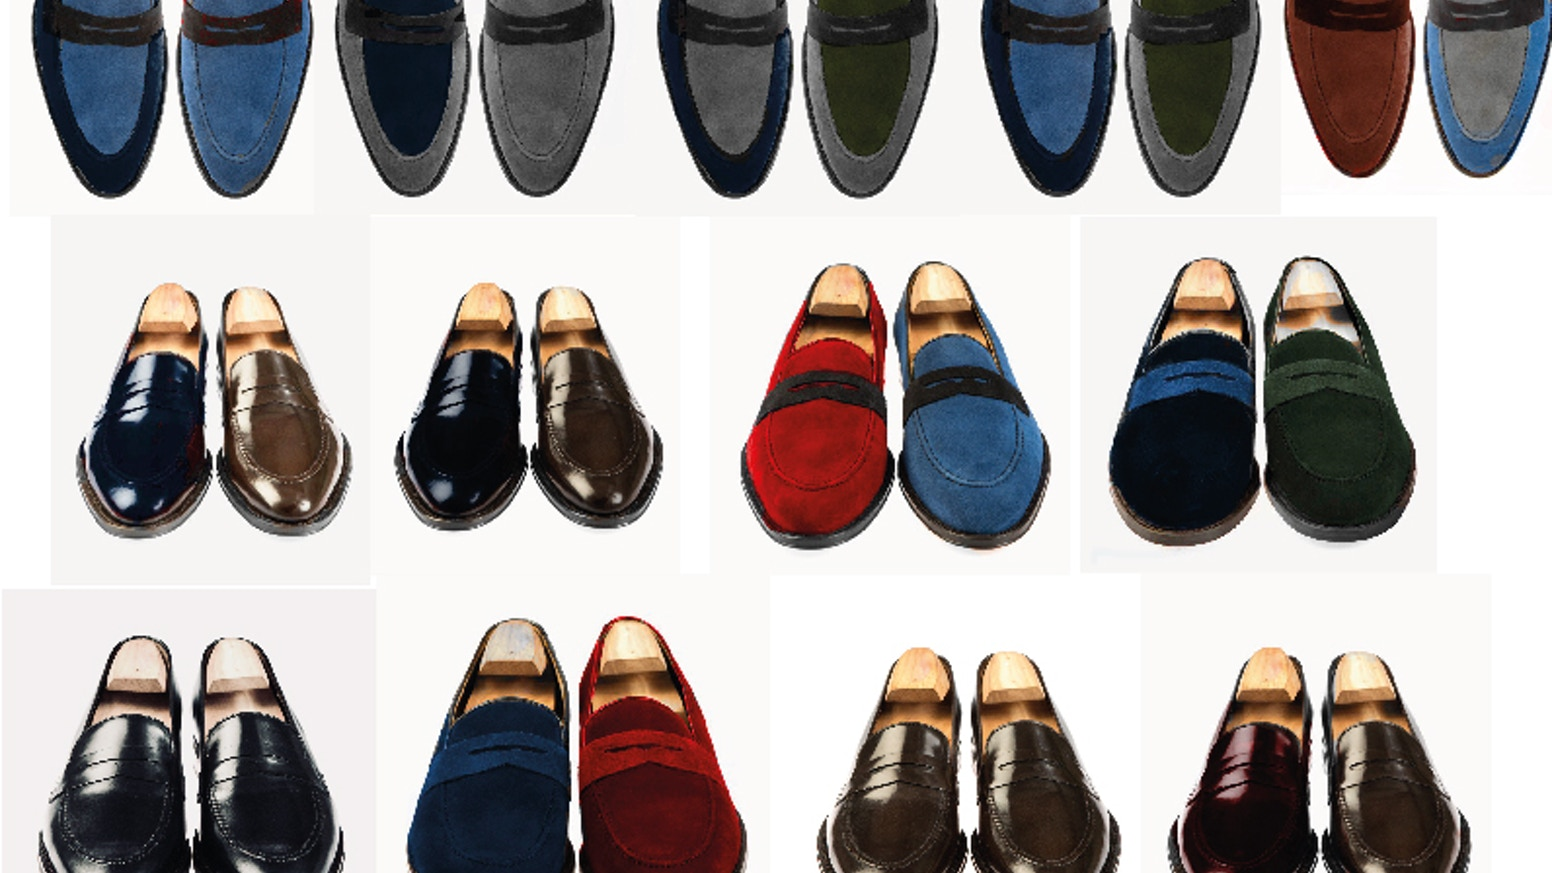 Handmade Spanish shoes at half the price, cutting edge tech to design your own shoes and our app to get your perfect size!